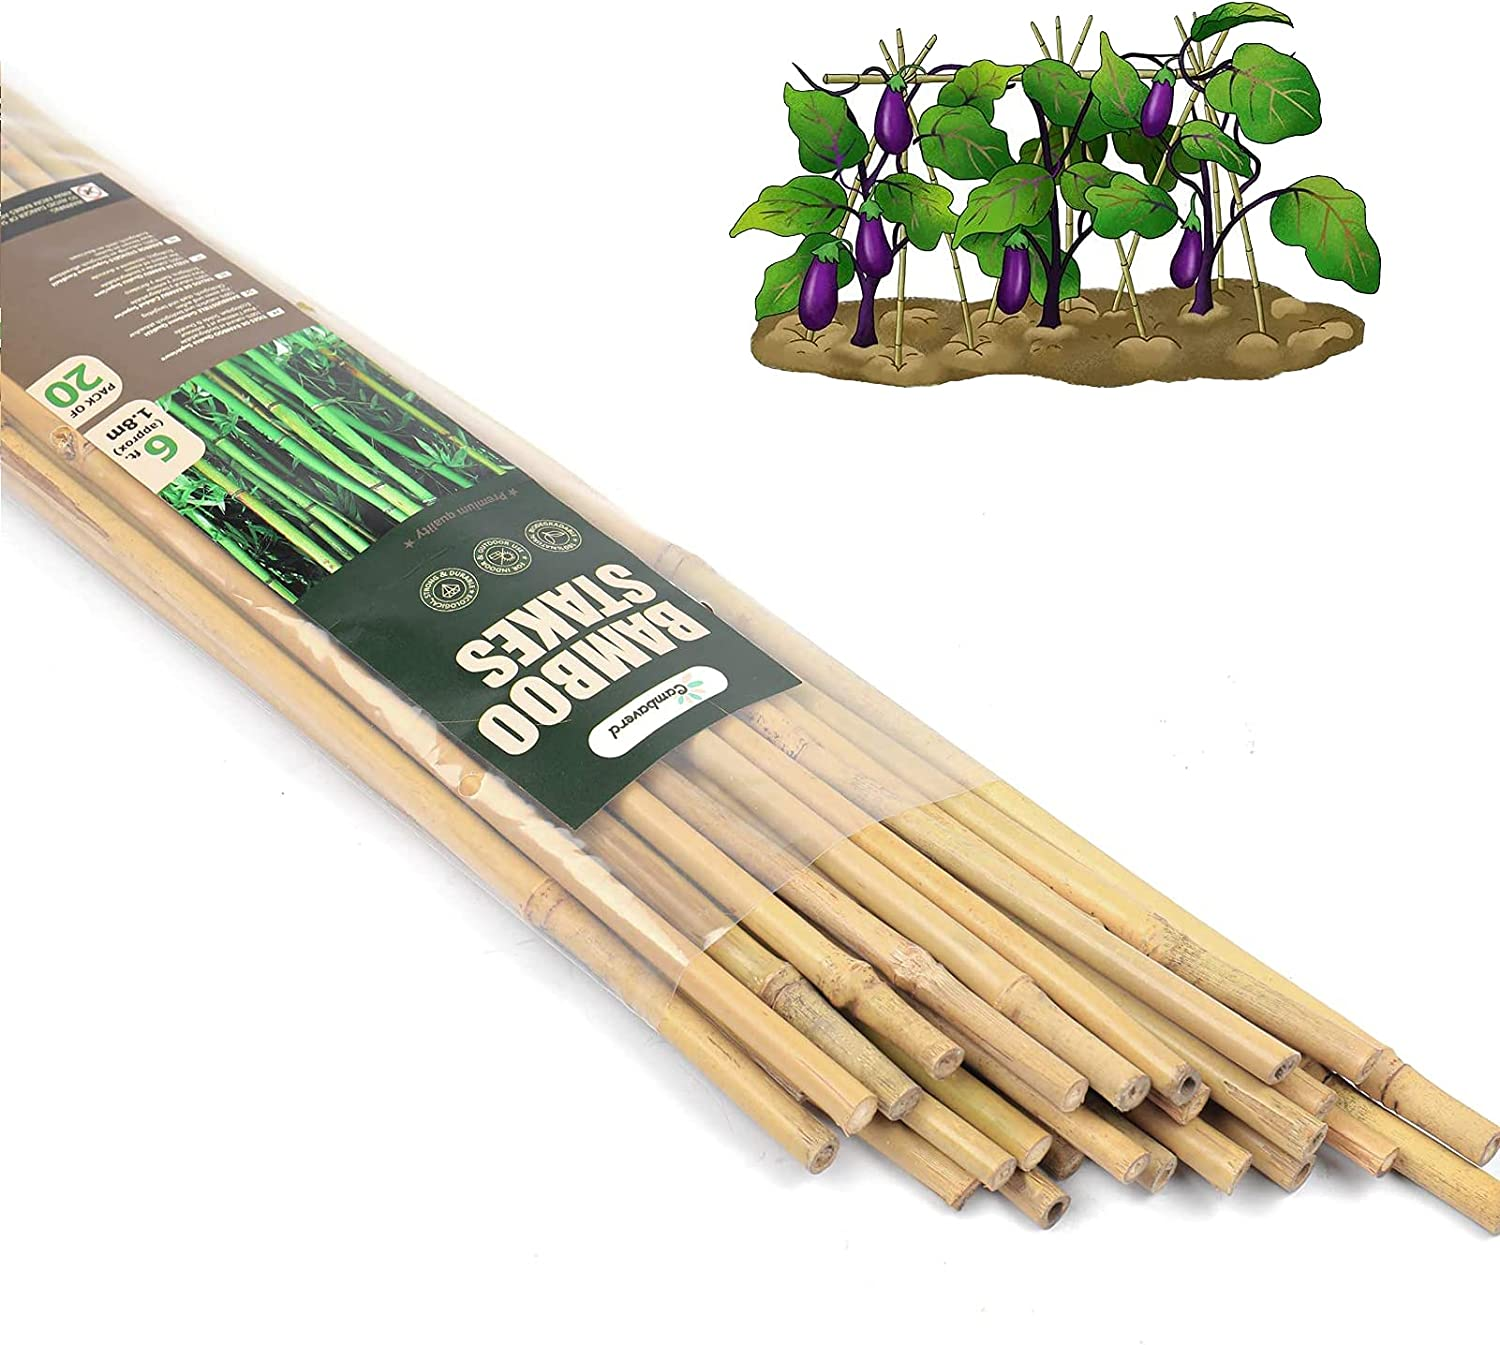 Cambaverd Natural Bamboo Stakes 6 Feet (180cm), Eco-Friendly Bamboo Plant Stakes, for Roma Tomatoes Sunflowers Pole Beans Trees Potted Dahlia Flowers and Climbing Plants - Pack of 20 Bamboo Sticks